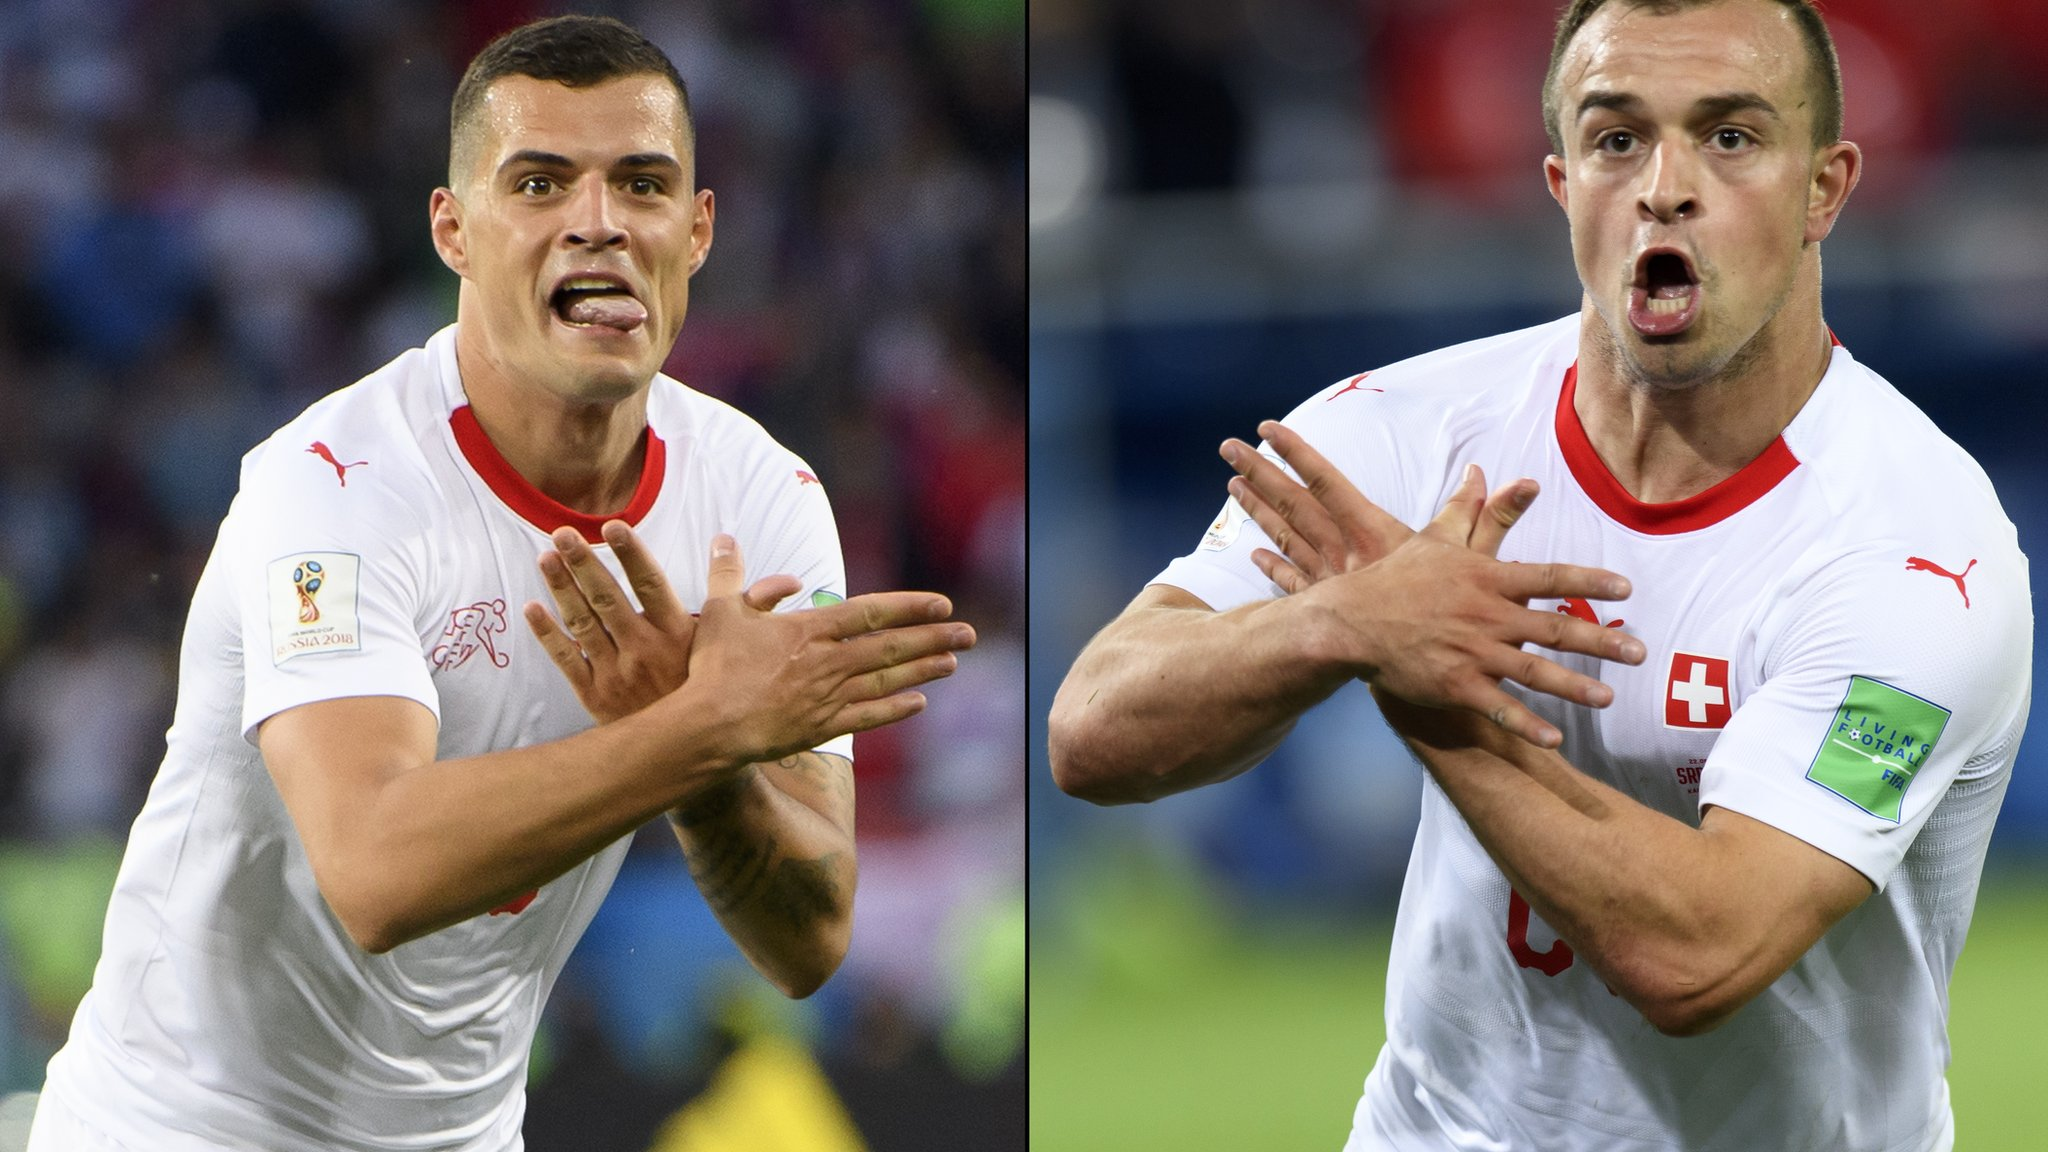 Switzerland duo facing bans over 'eagle' celebrations